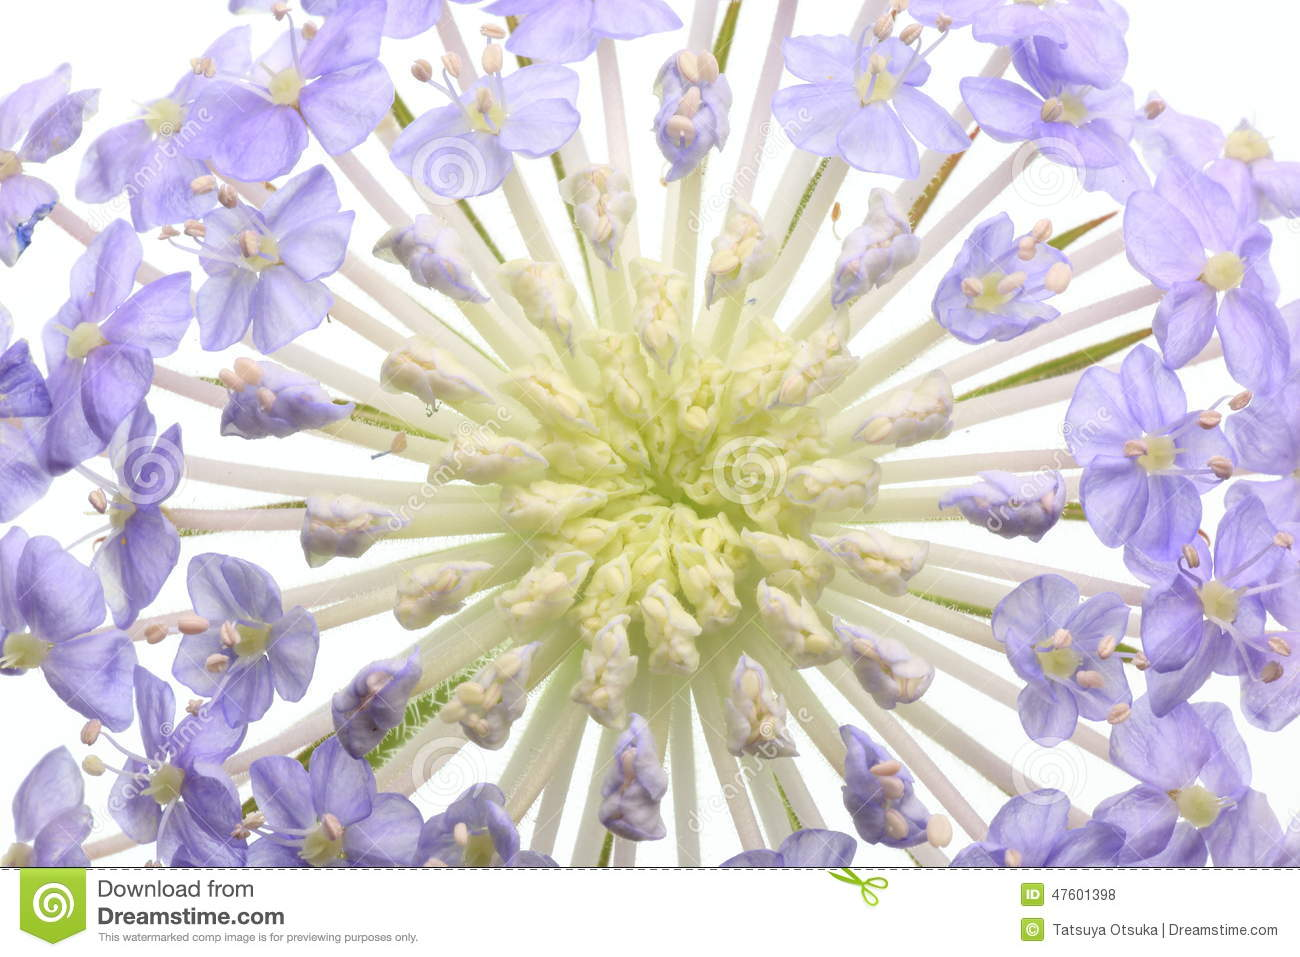 Pincushion Flower White Comousar